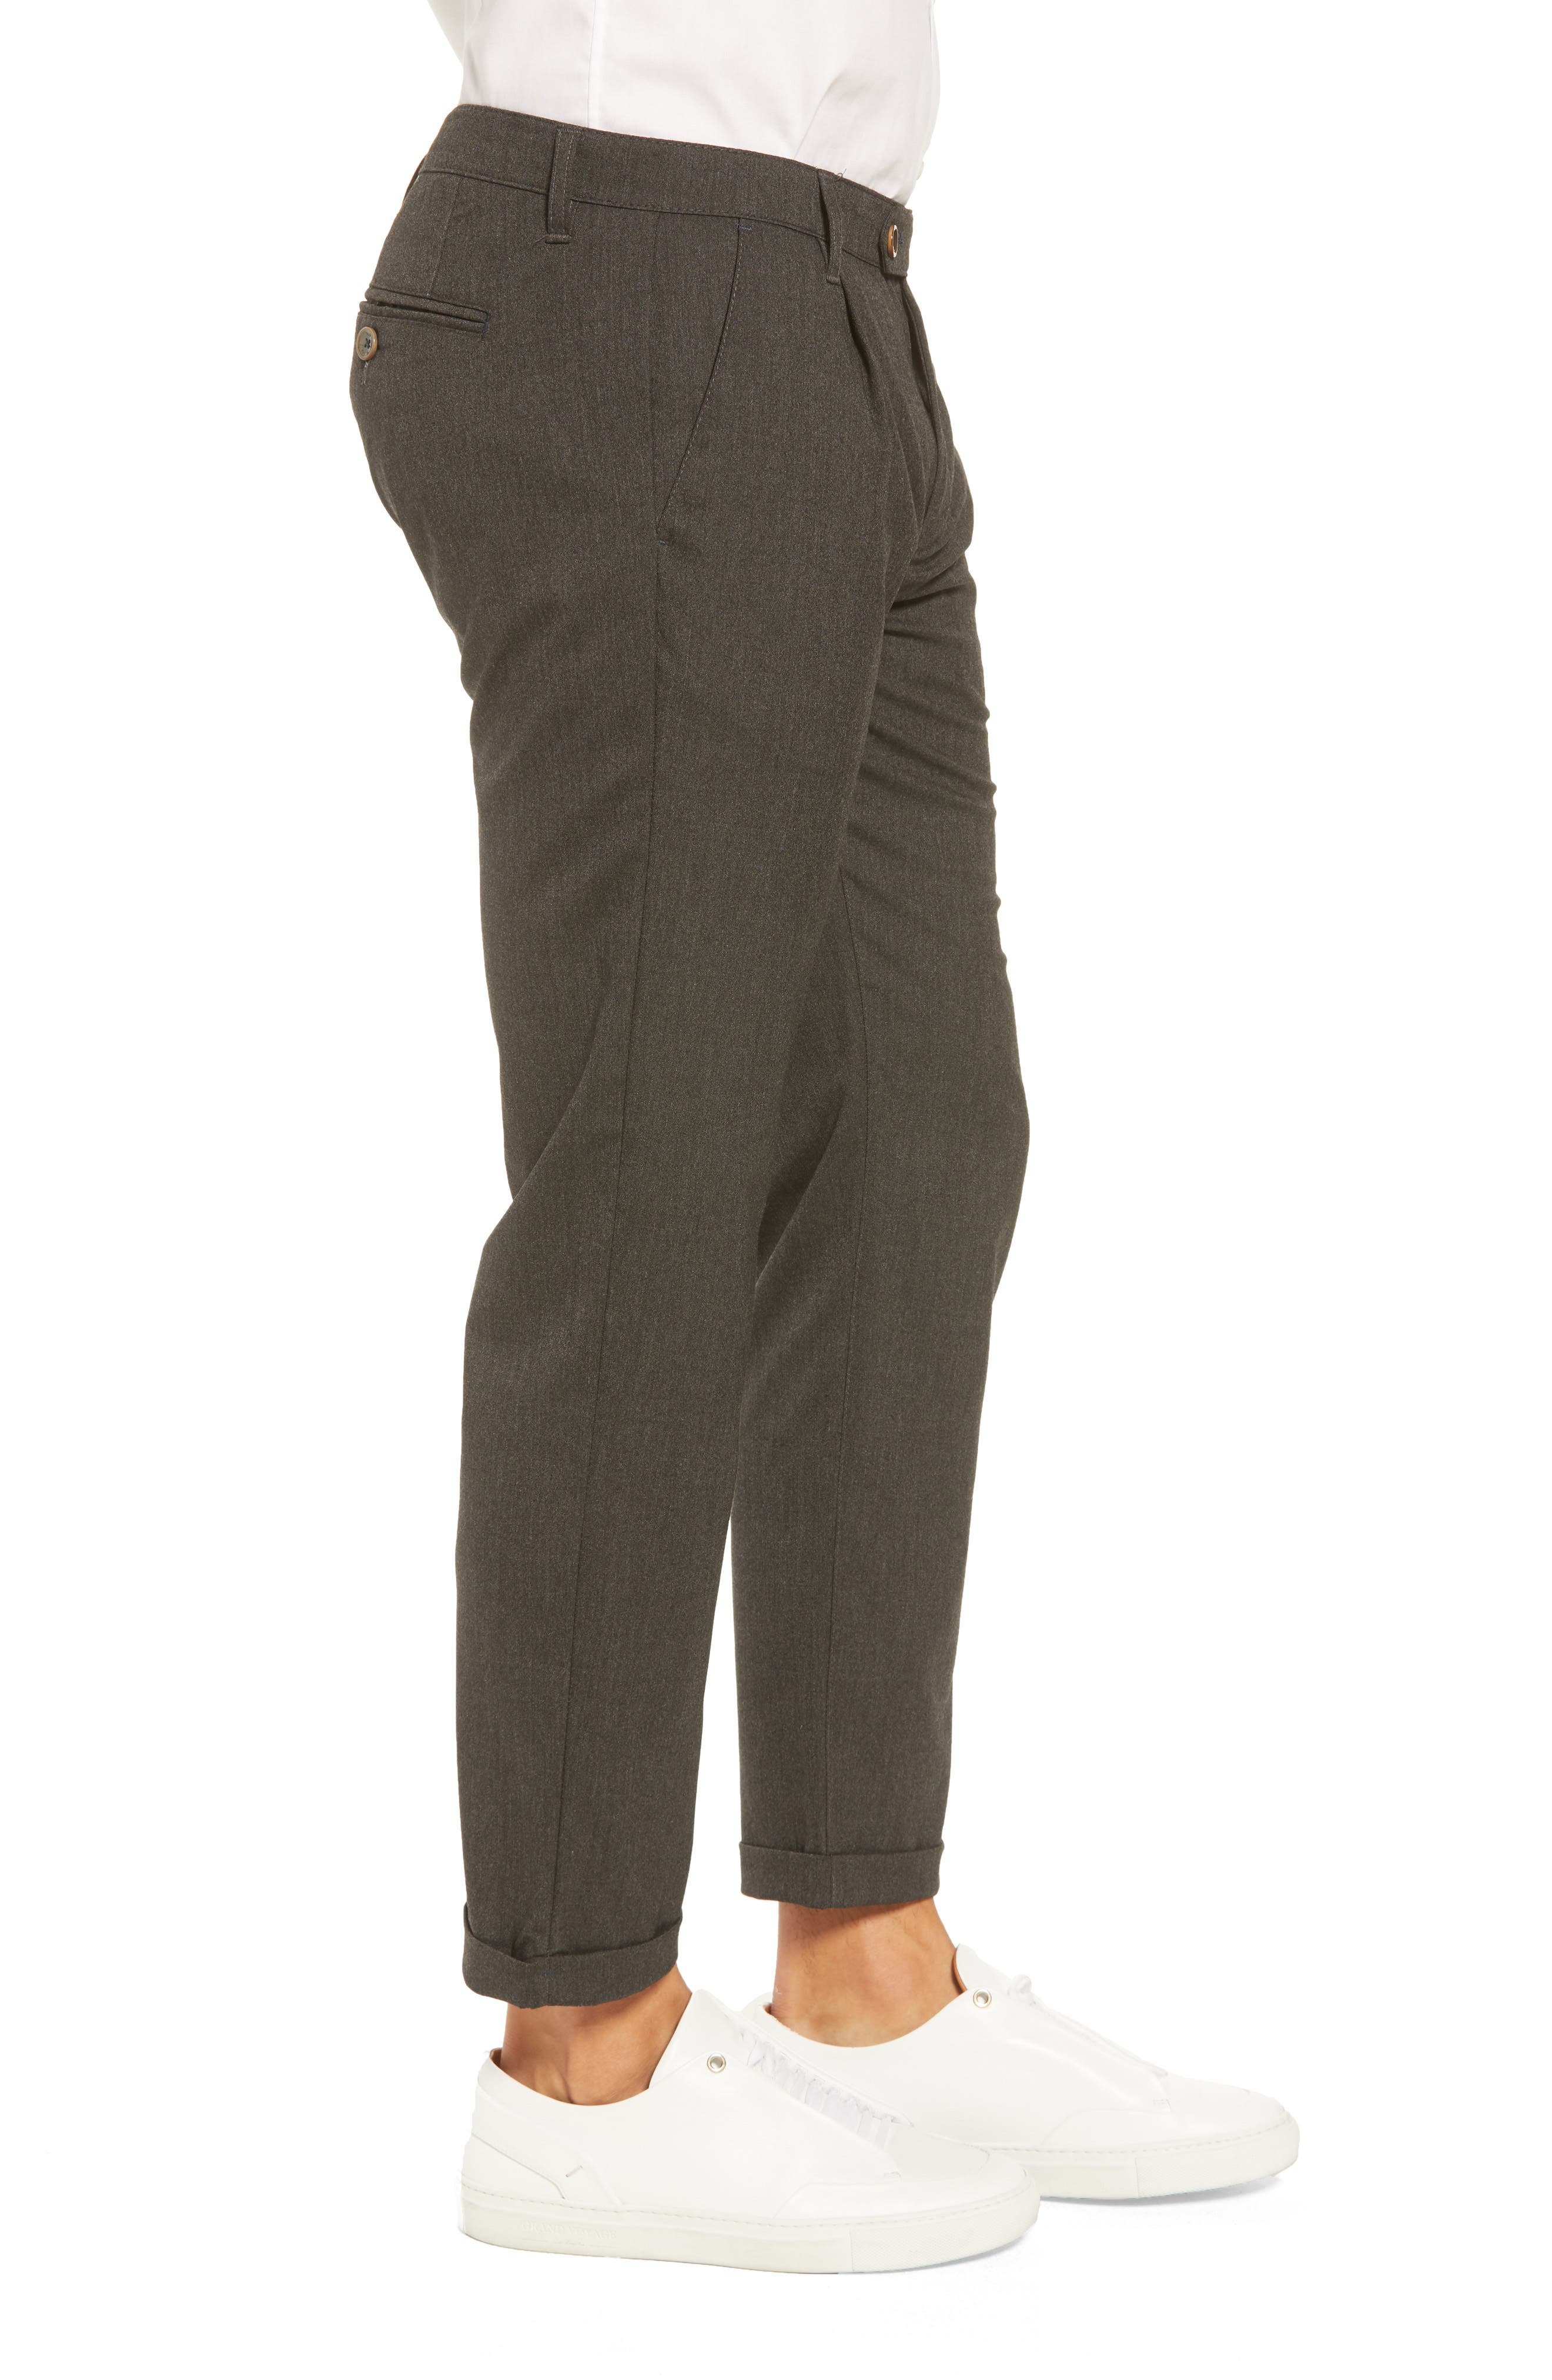 Champi Pleated Cropped Pants,                             Alternate thumbnail 3, color,                             001